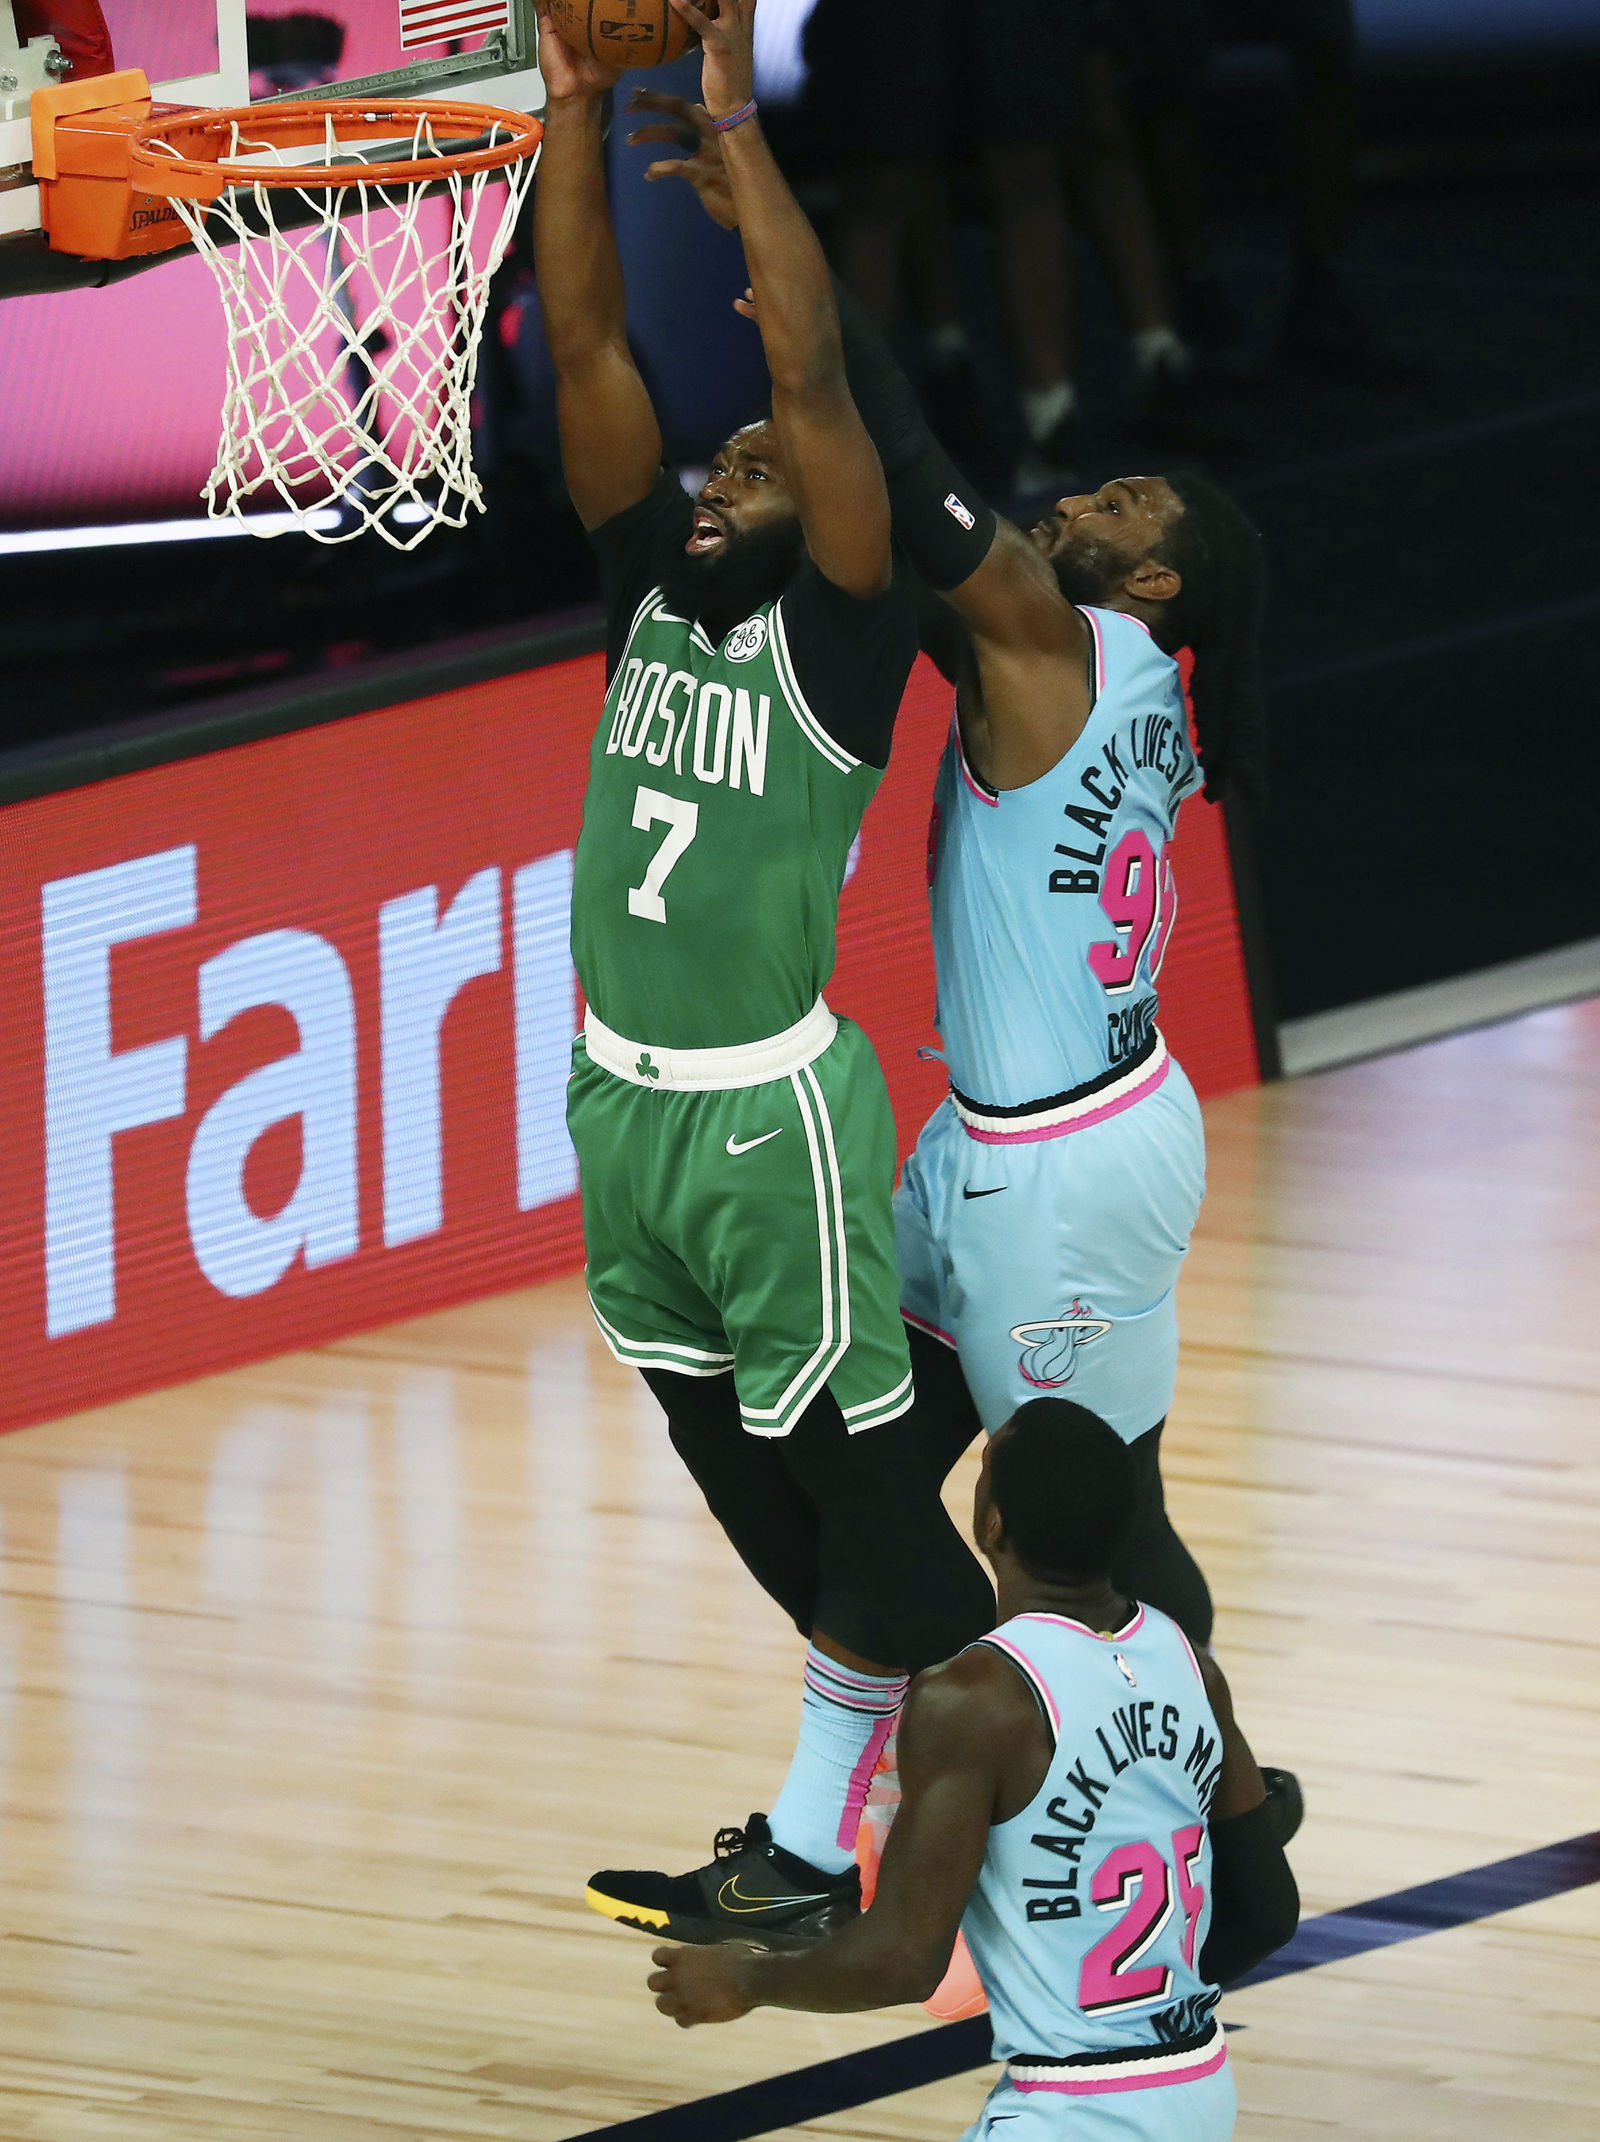 Boston Celtics guard Jaylen Brown (7) dunks against Miami Heat forward Jae Crowder (99) during the second half of an NBA basketball game Tuesday, Aug. 4, 2020, in Lake Buena Vista, Fla. (Kim Klement/Pool Photo via AP)